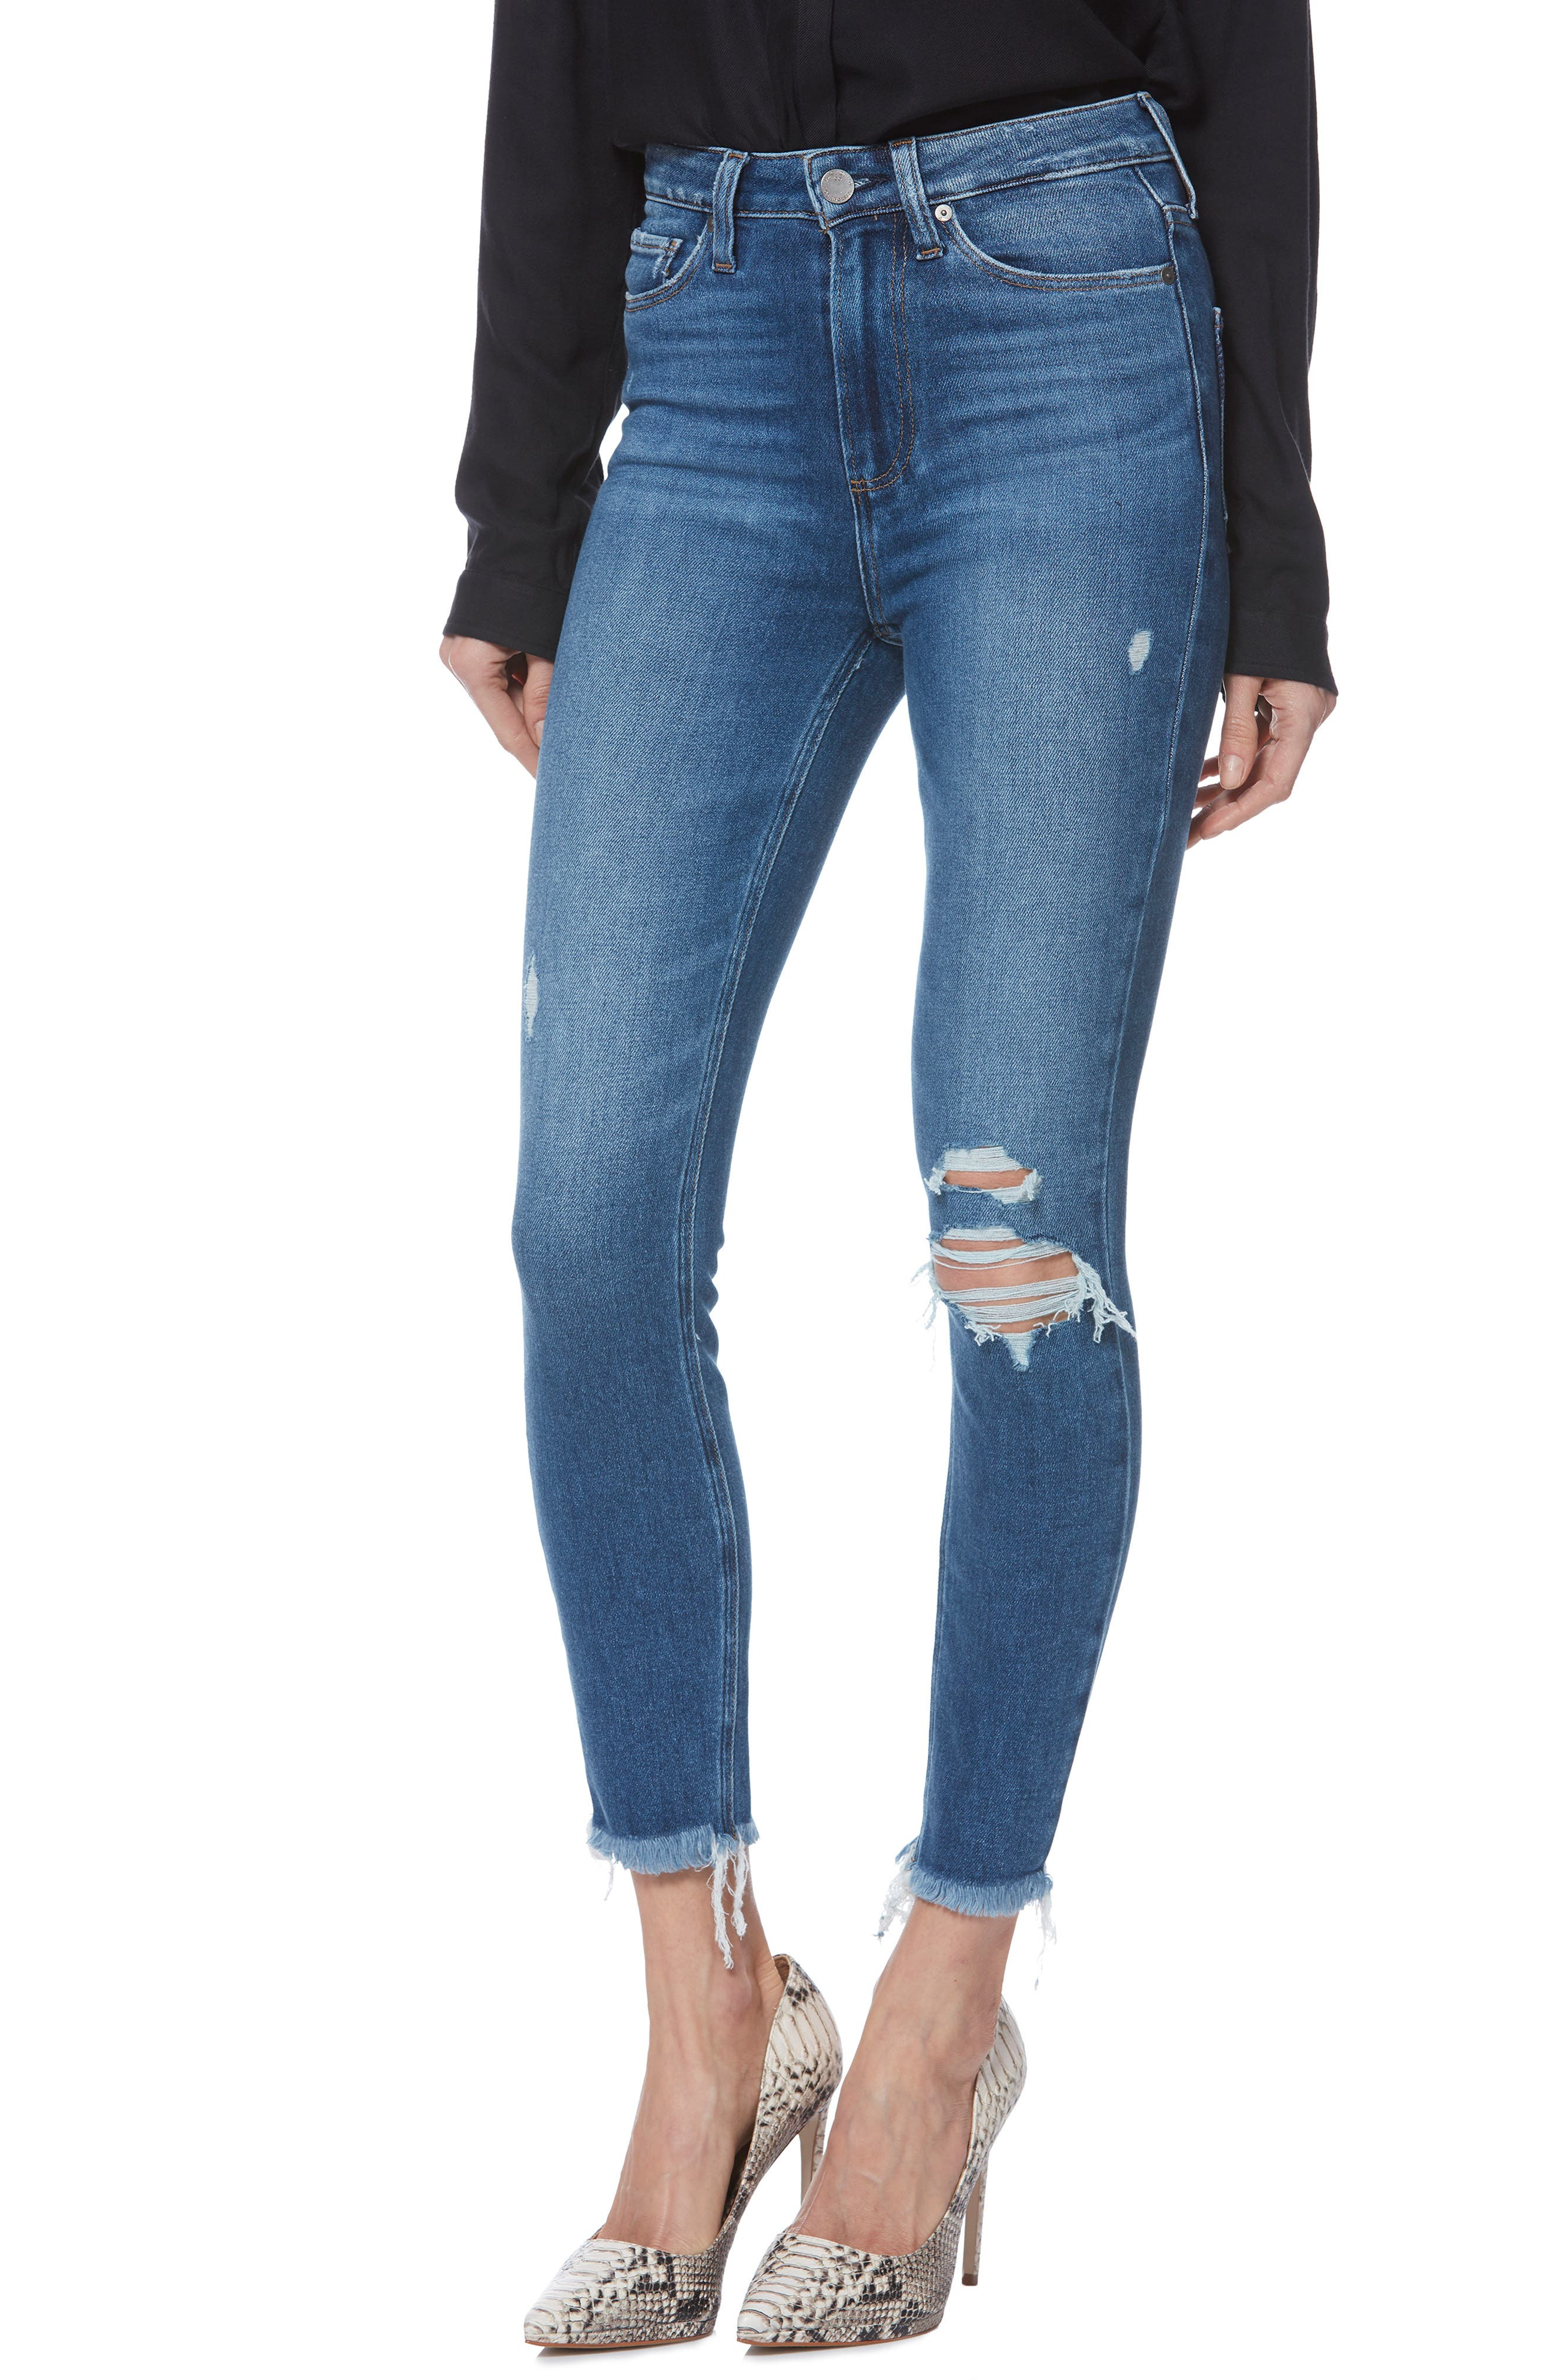 PAIGE, Margot High Waist Crop Skinny Jeans, Main thumbnail 1, color, ALESSIO DESTRUCTED